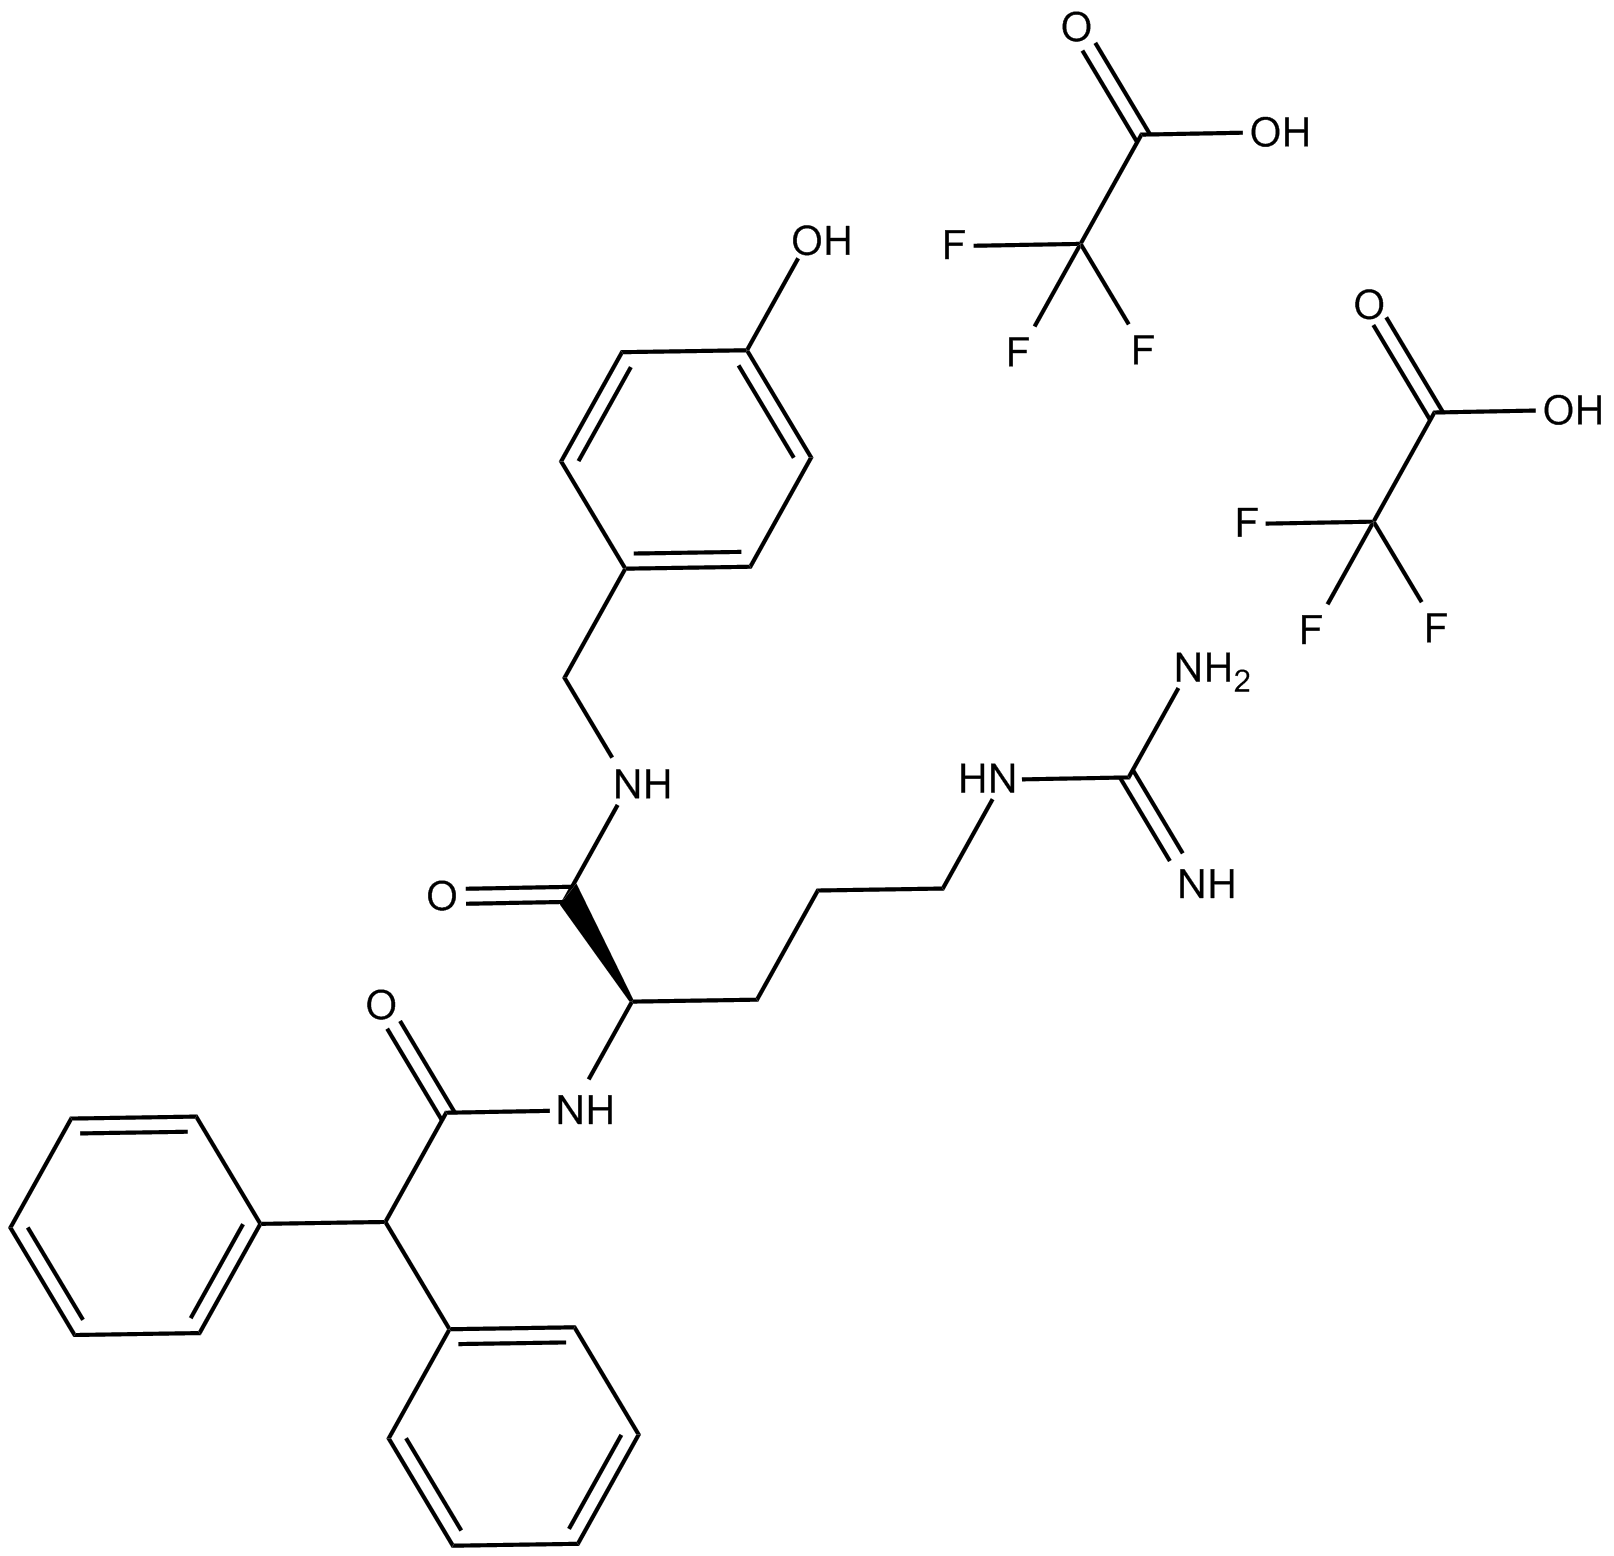 BIBP 3226 trifluoroacetate